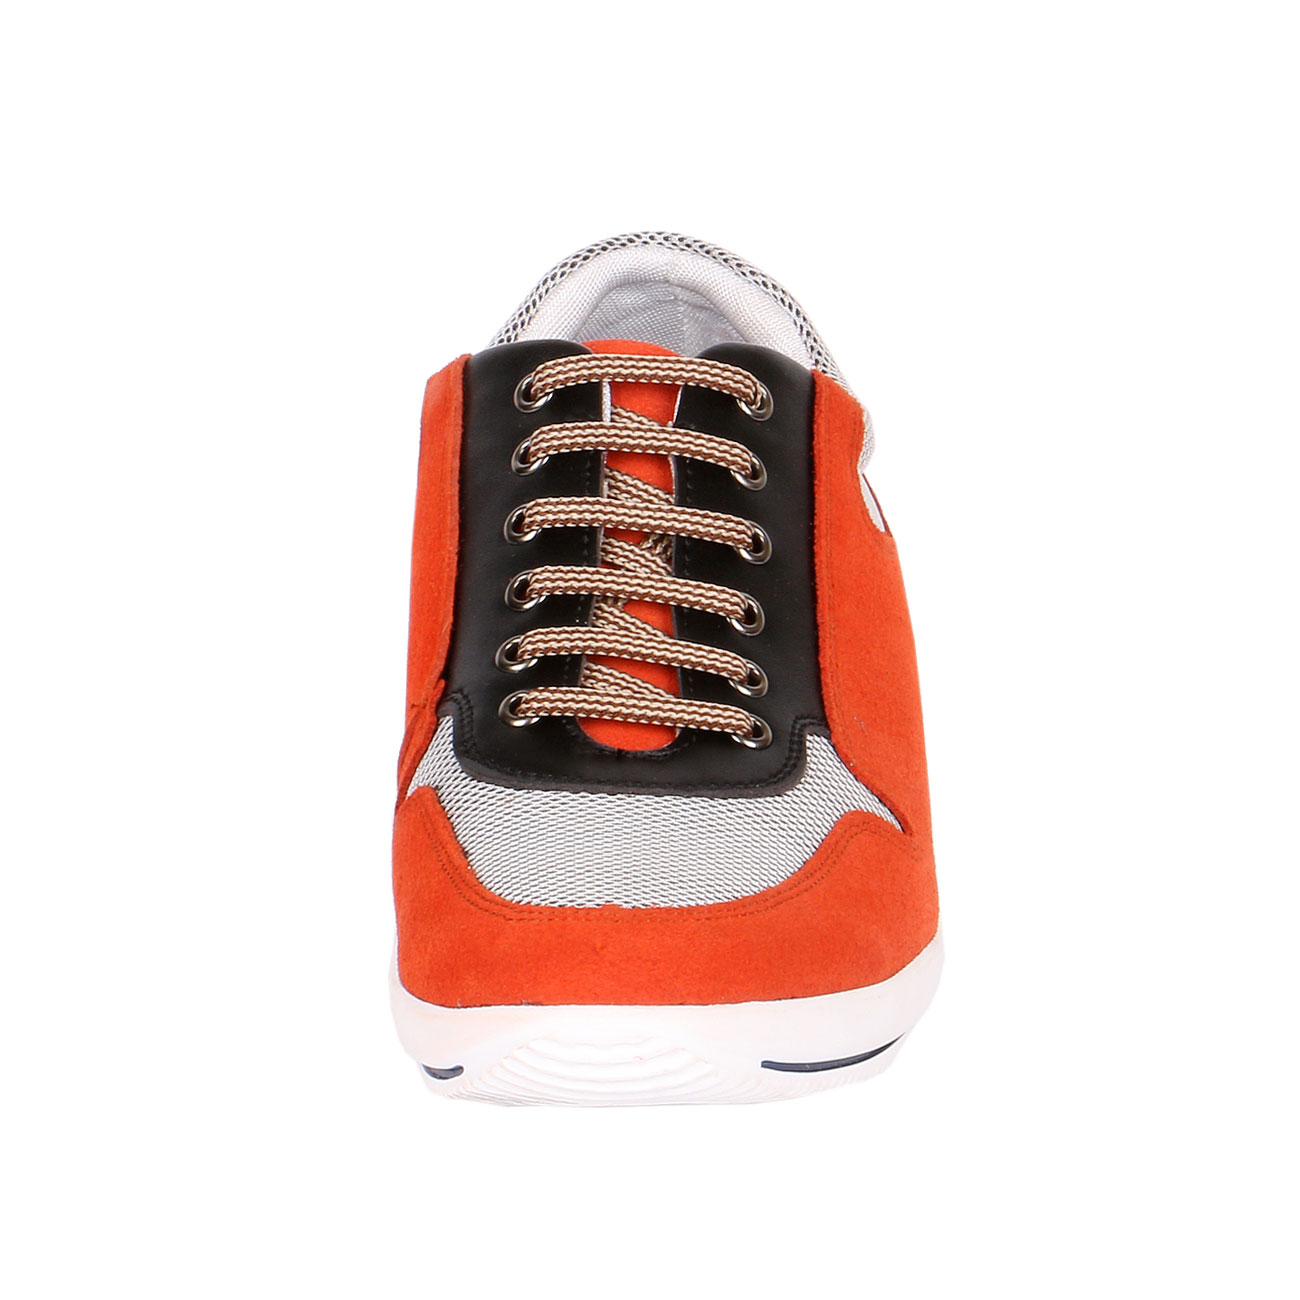 Men's Sneakers for Height-view2